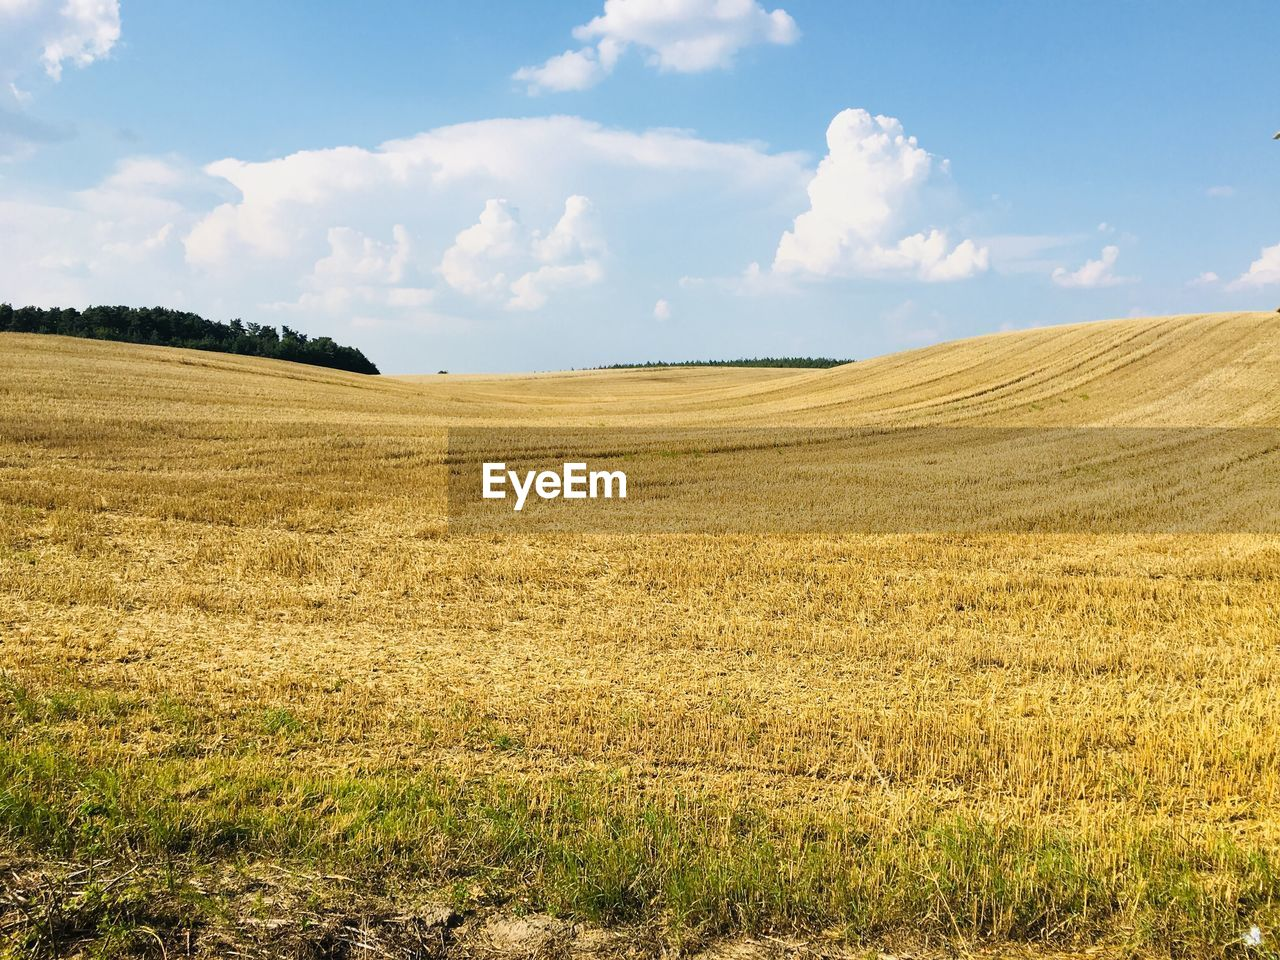 sky, land, landscape, tranquil scene, environment, field, tranquility, cloud - sky, beauty in nature, rural scene, agriculture, scenics - nature, day, nature, plant, no people, horizon, growth, horizon over land, sunlight, outdoors, plantation